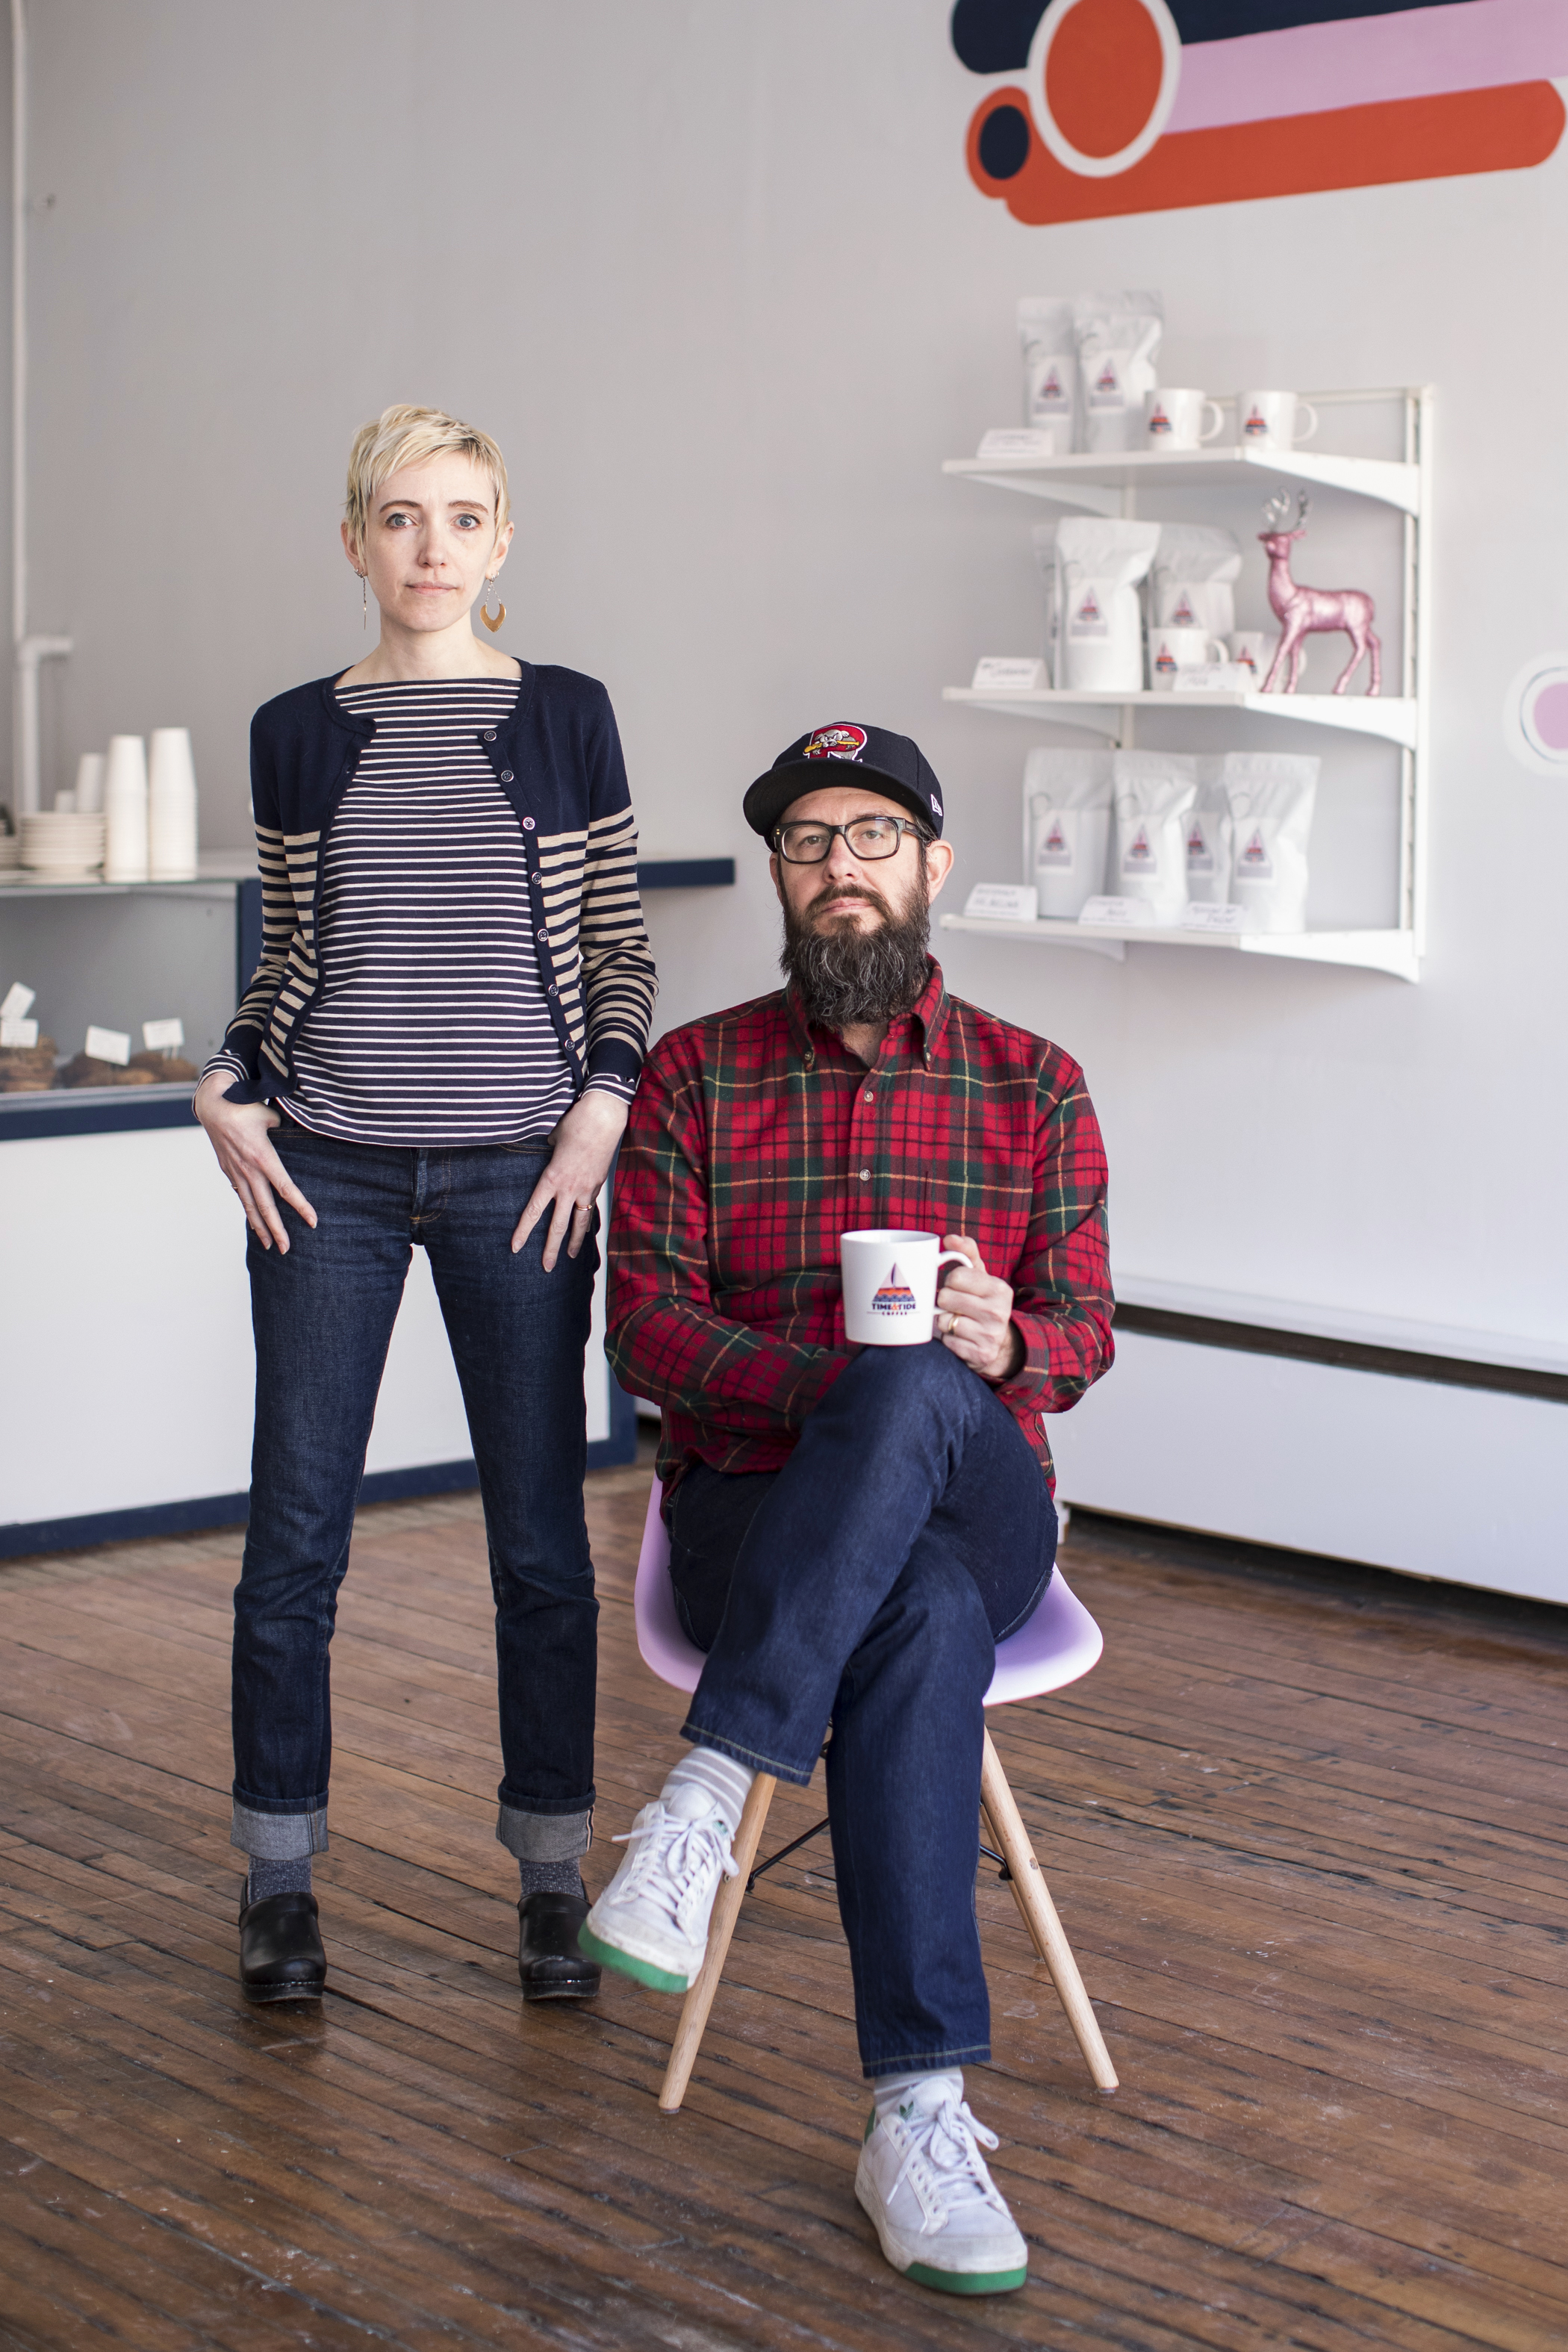 Woman in striped top and jeans stands next to seated man in plaid shirt and ball cap. The man holds a coffee cup. Link opens new window for Alyce Henson Photography Instagram.